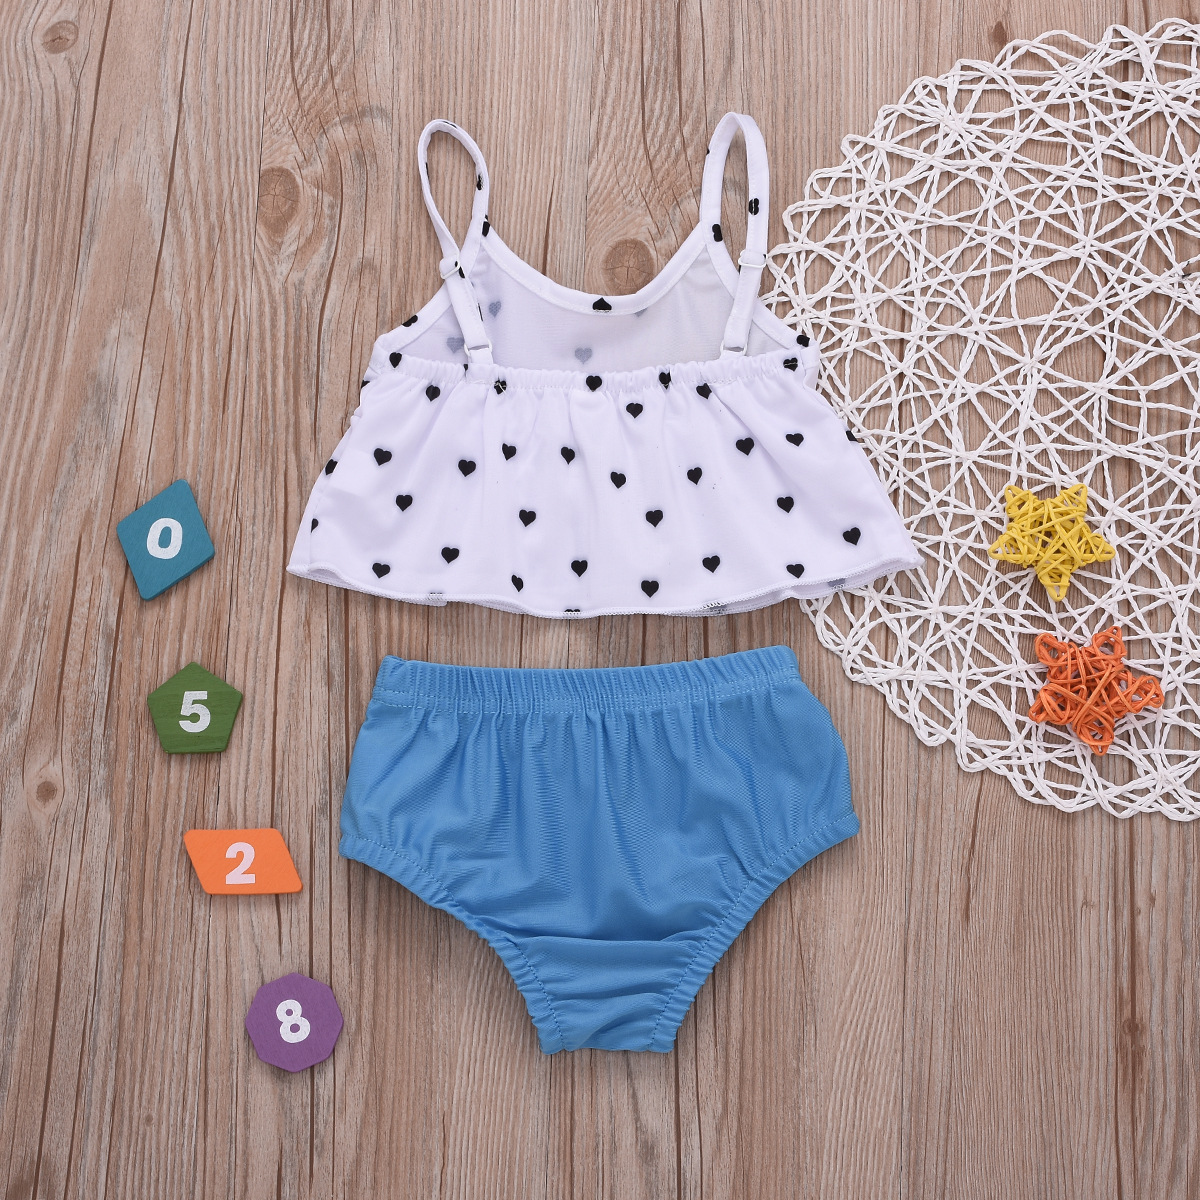 Girls Summer New Style 0-5-Year-Old Cool Solid Color Camisole Tube Top Polka Dot Heart Women's Young Children Bathing Suit